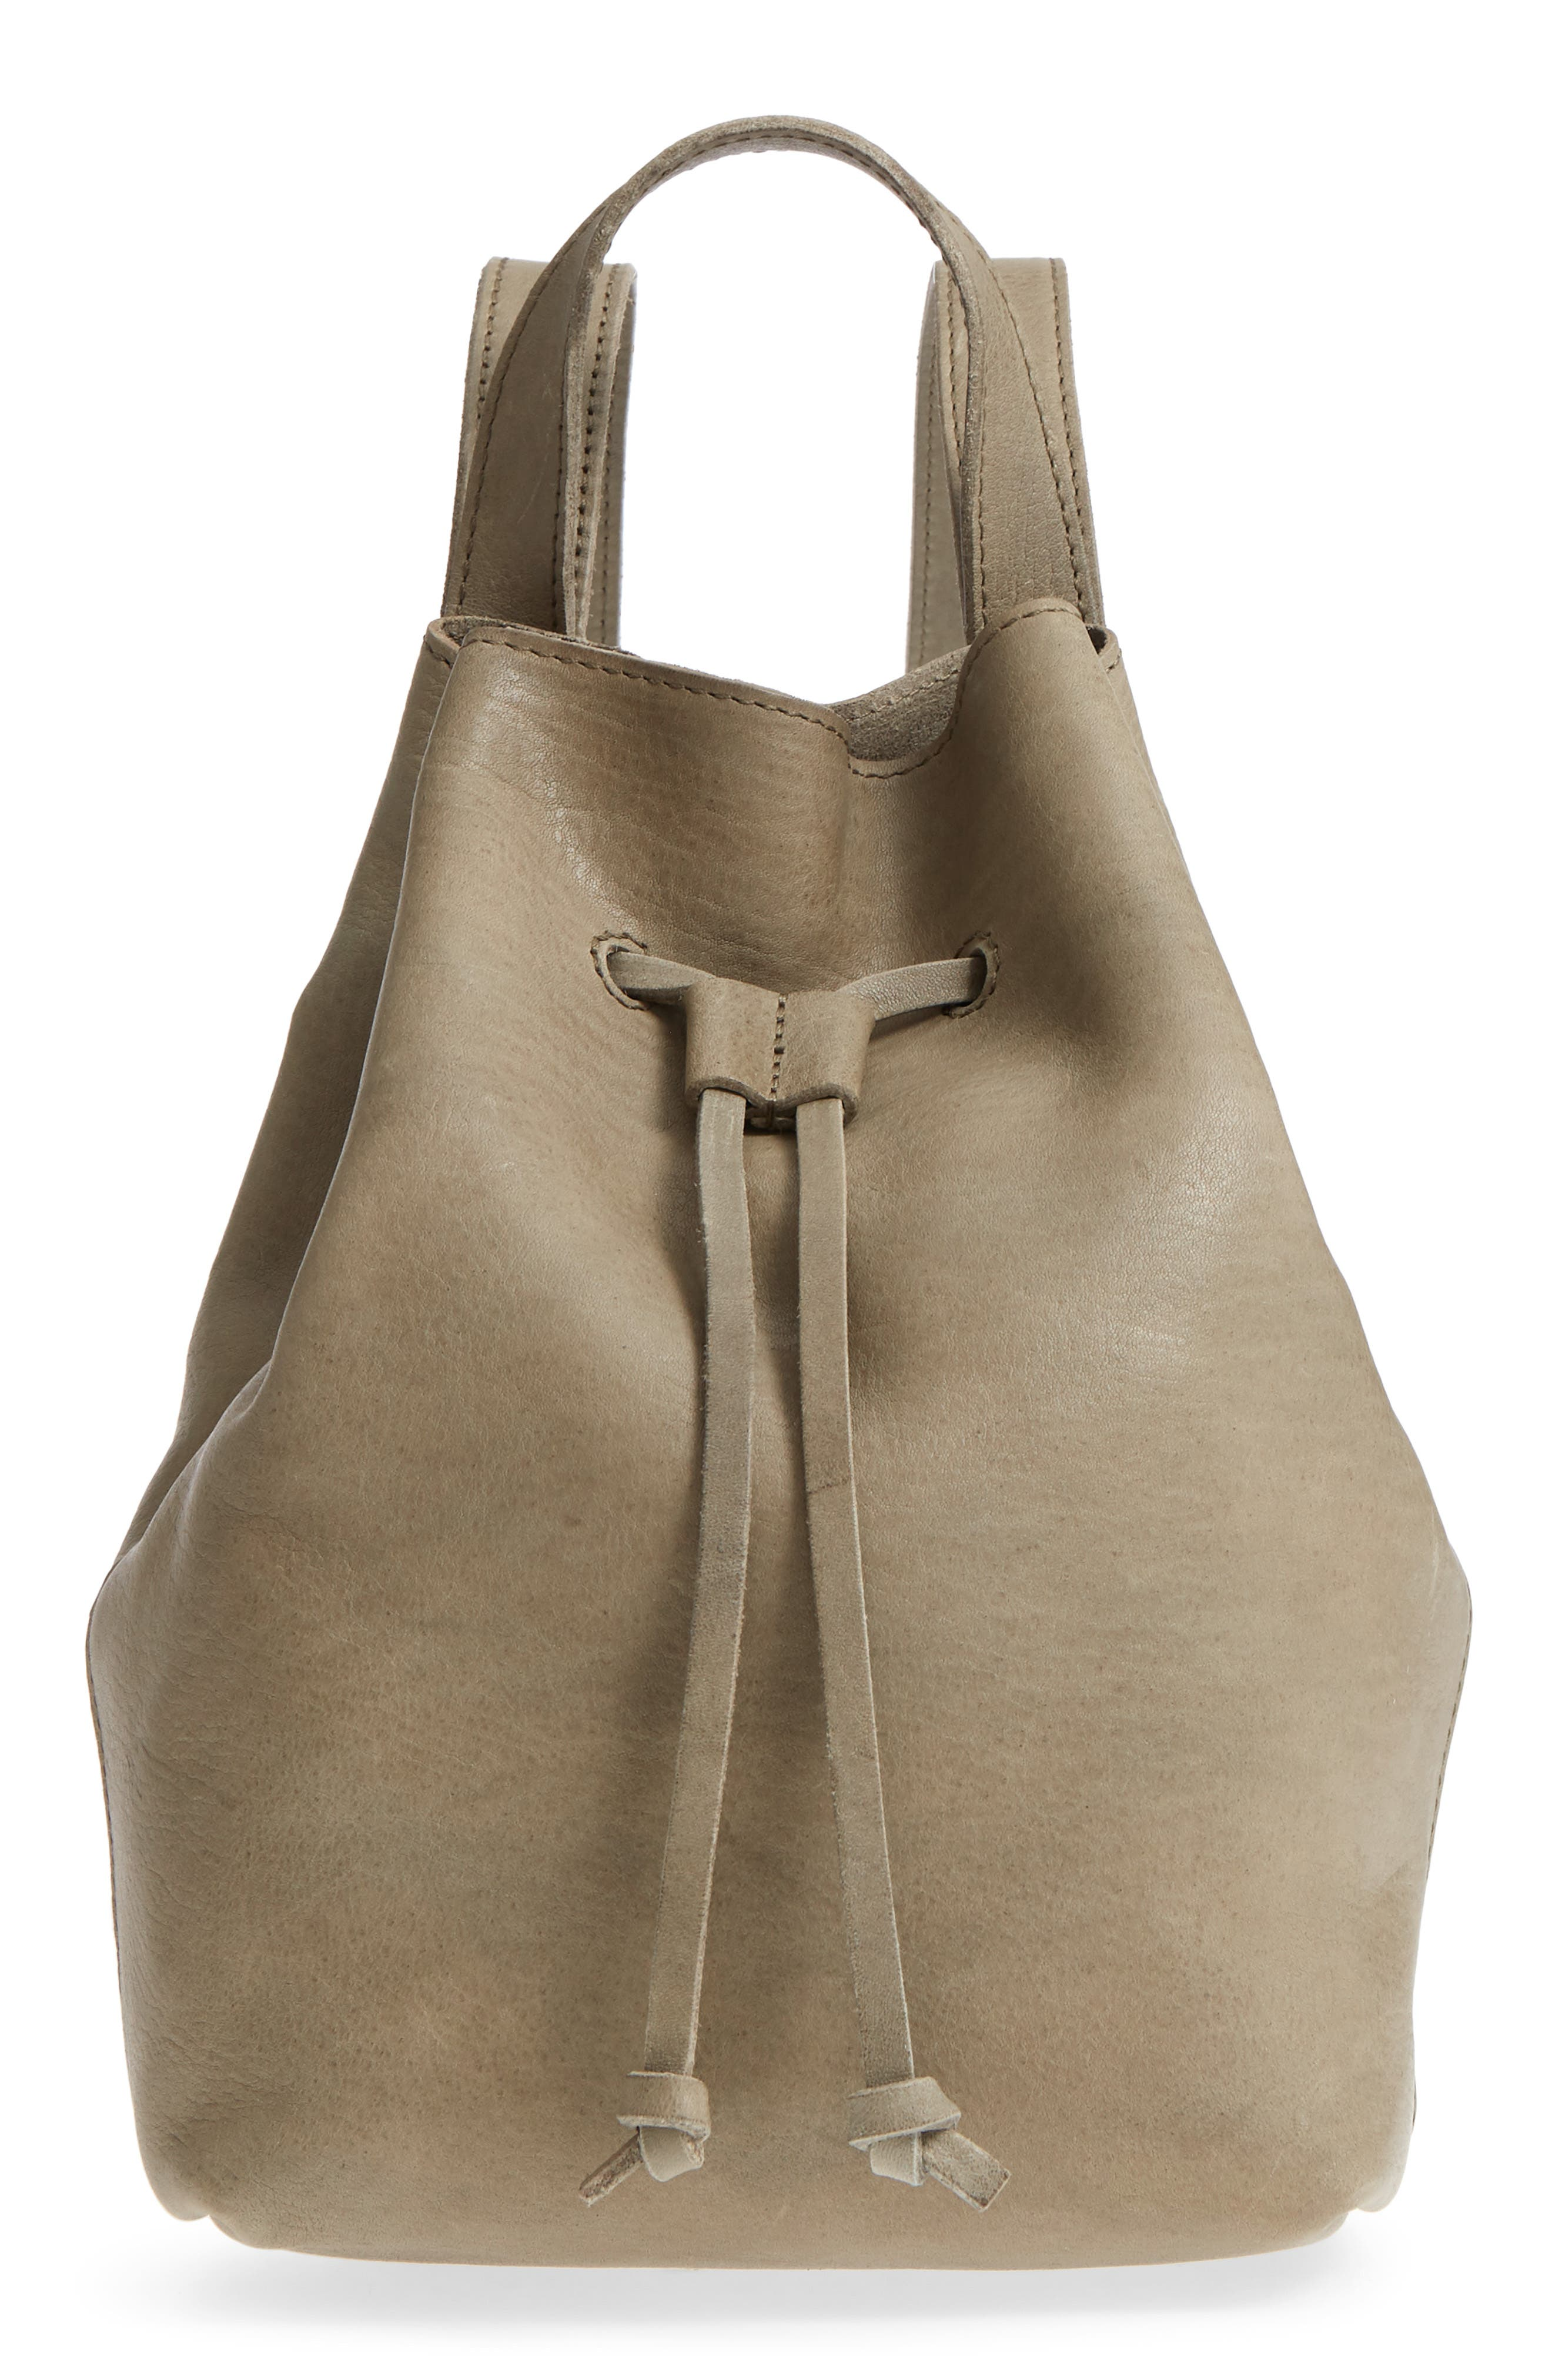 MINI SOMERSET LEATHER BACKPACK - GREEN